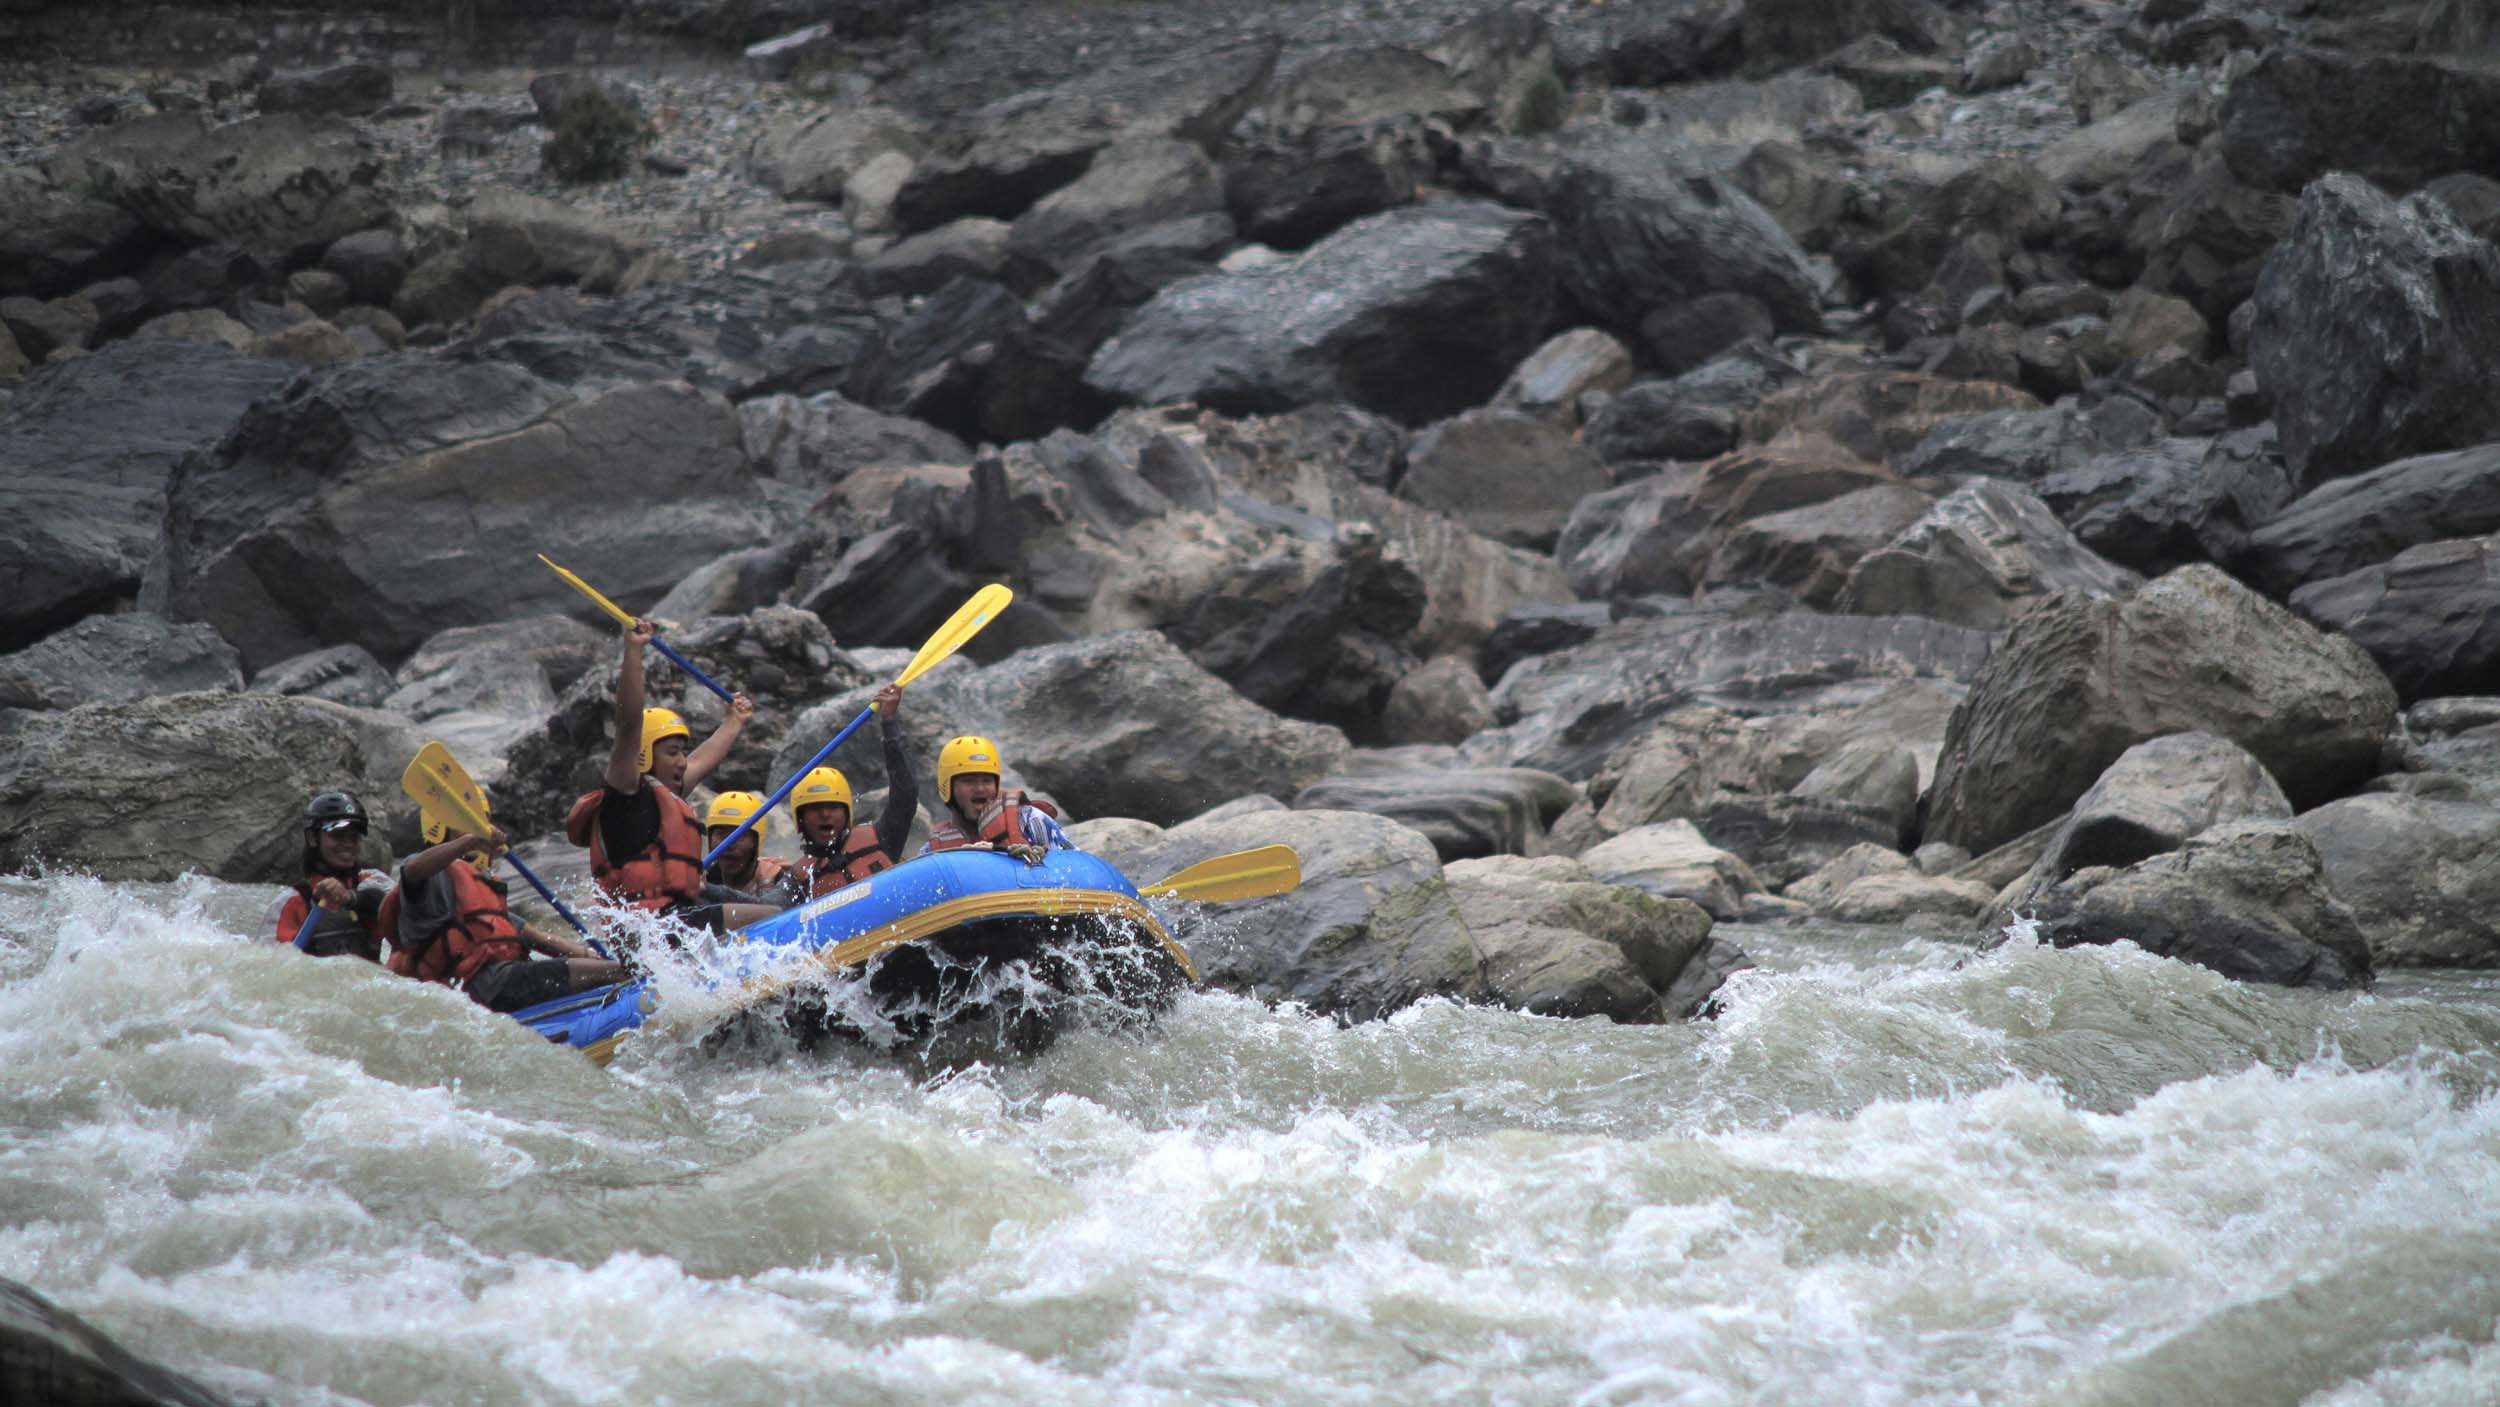 rafting in nepal Nepal is the best destination for whitewater rafting trips in the world it has more than a dozen rafting rivers that are located in beautiful natural settings giving you a journey of a lifetime.